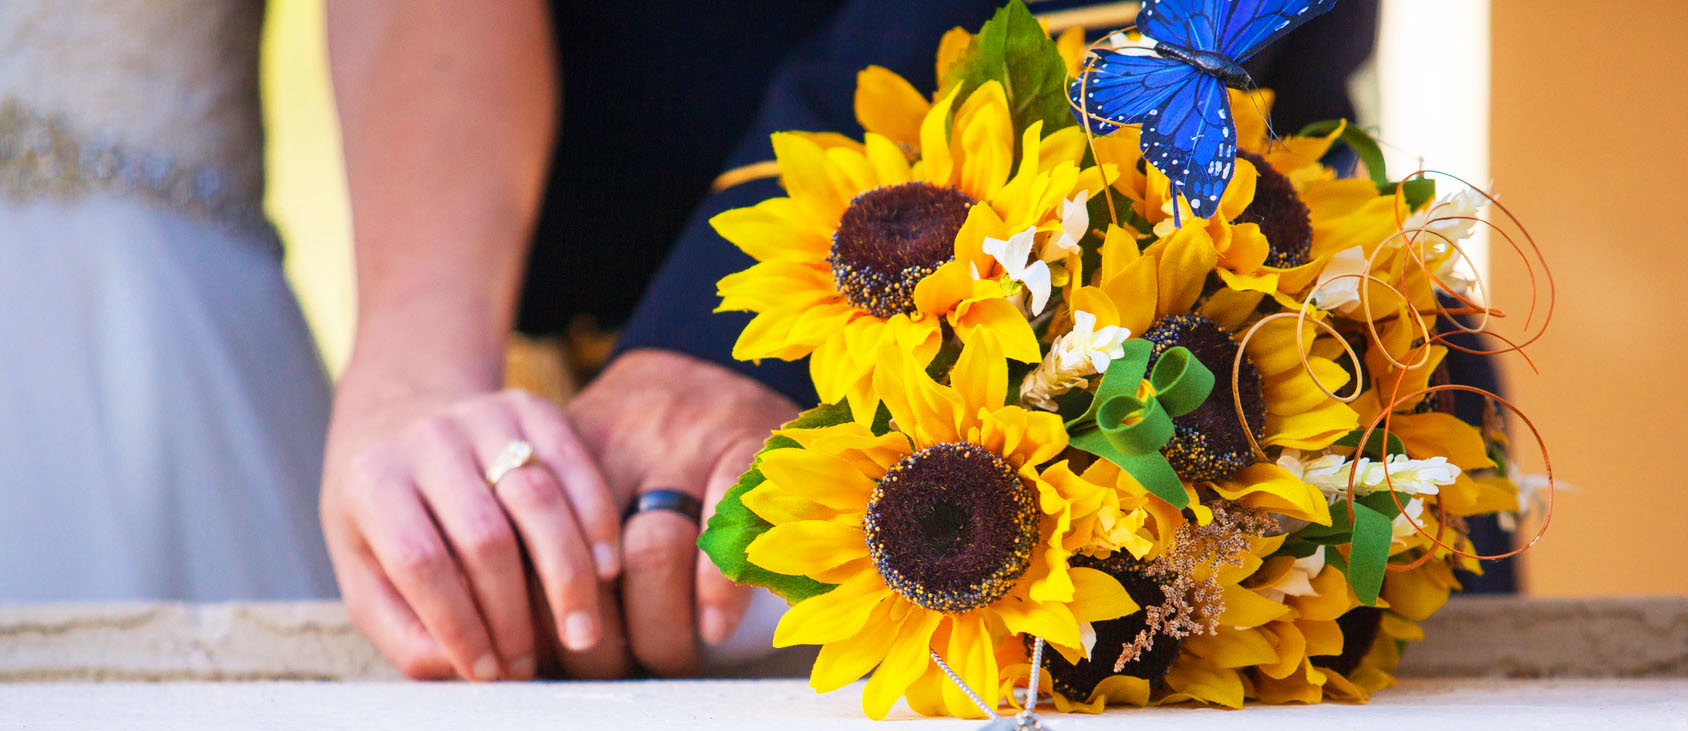 30 Sunflower Wedding Decor Ideas For You Big Day   Wedding Forward sunflower wedding decor ideas featured image